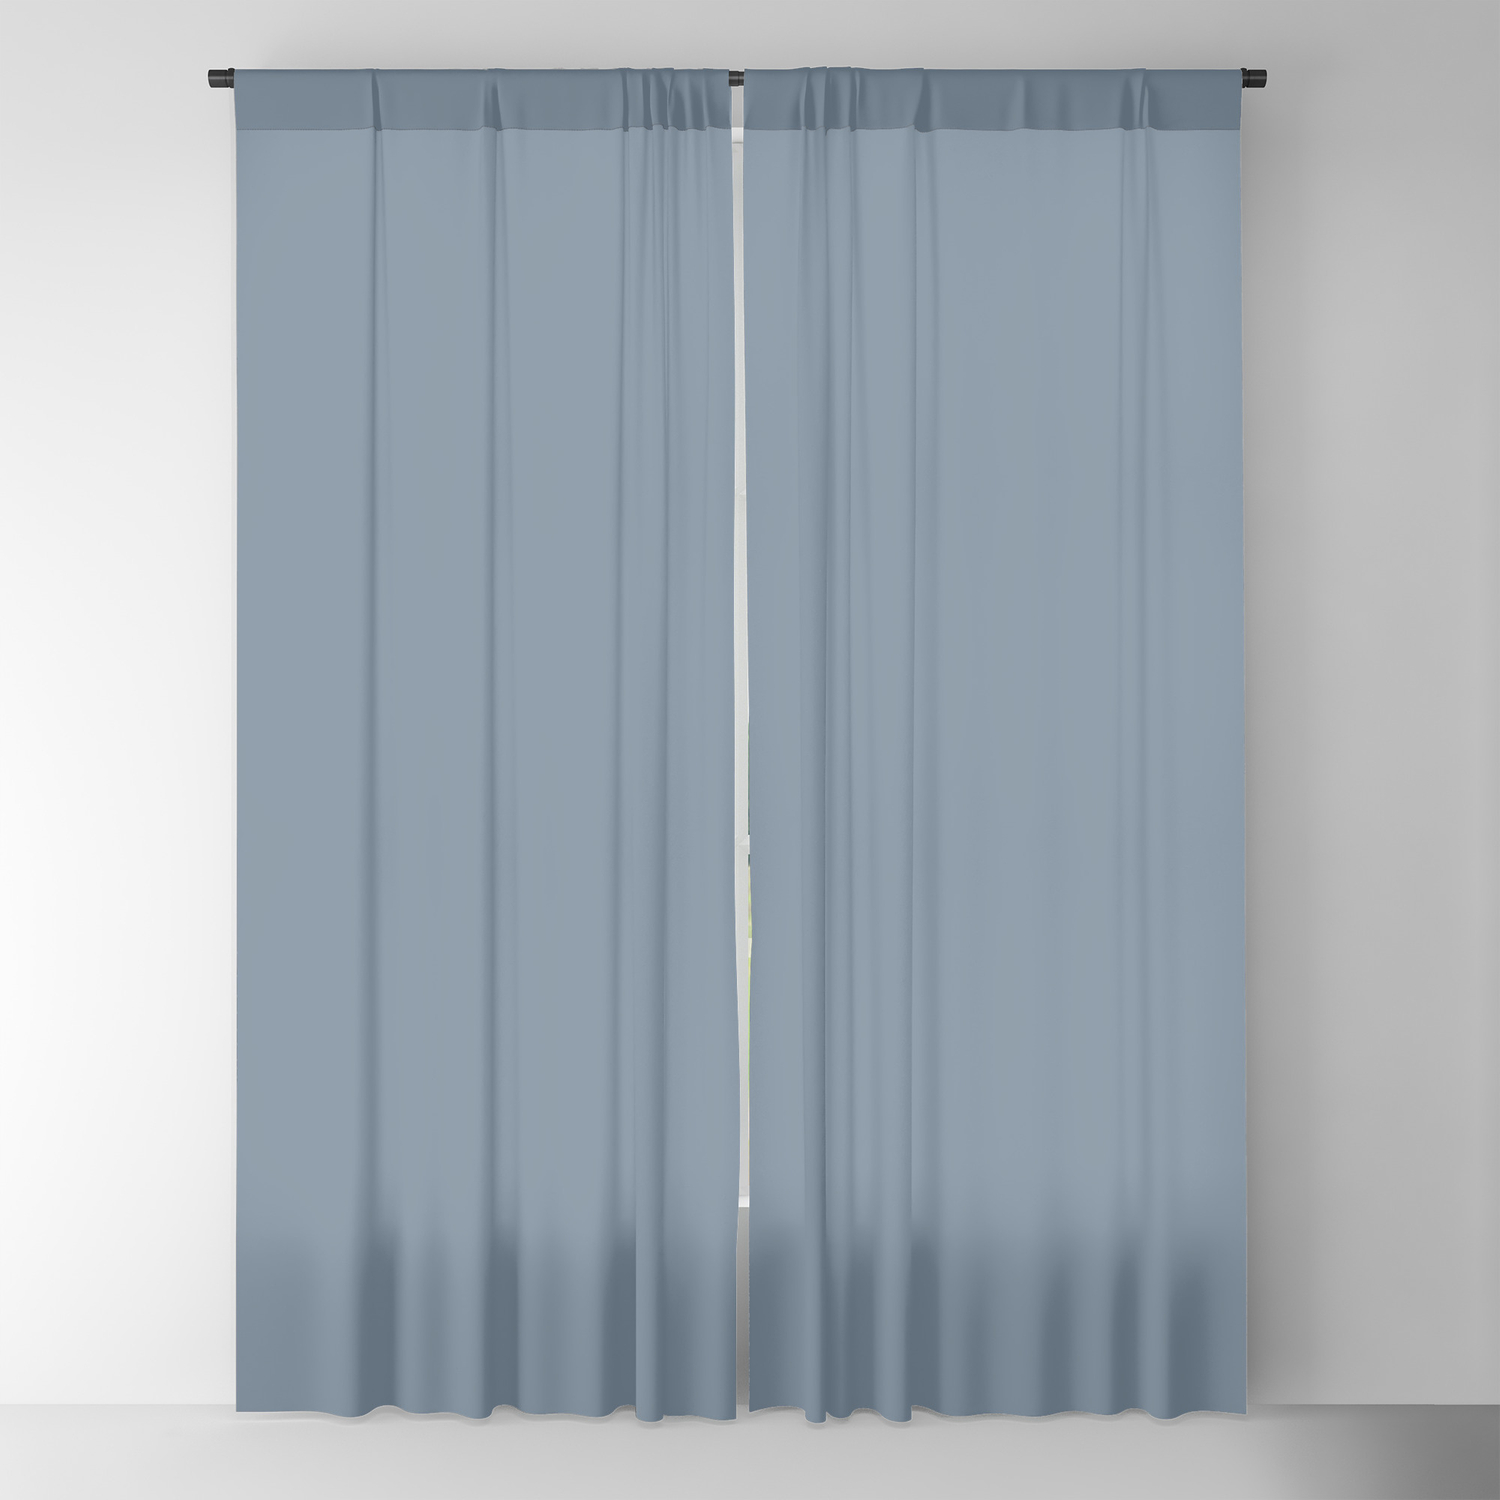 Slate Grey Plain Color Blackout Curtain